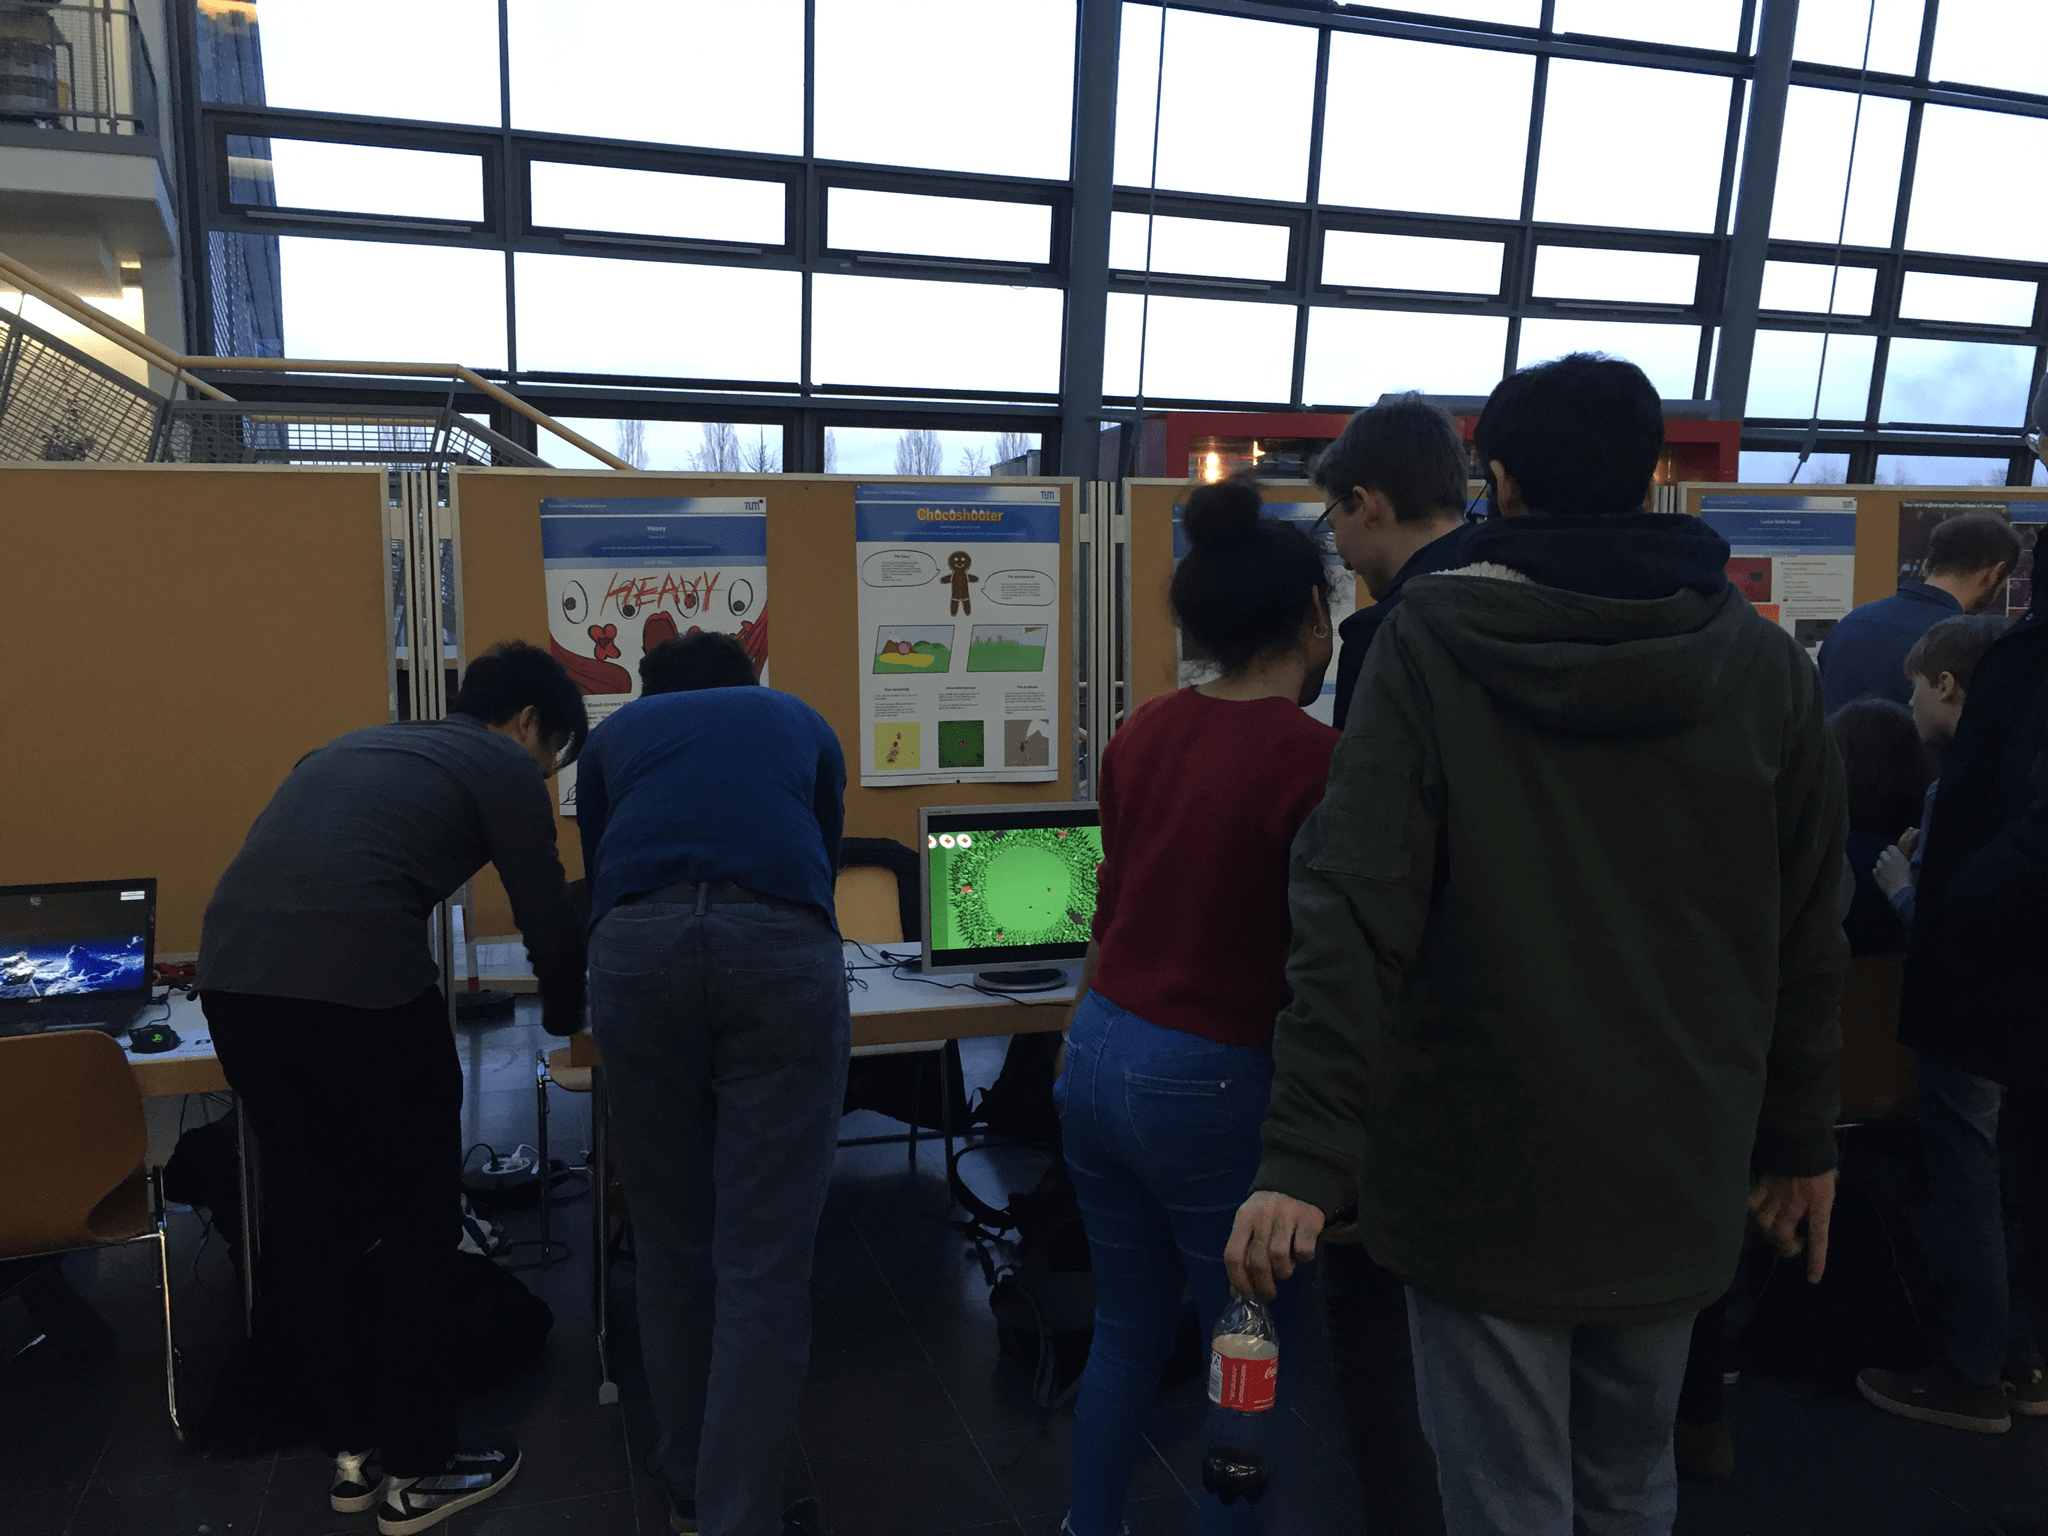 Demo booth with our game chocoshooter